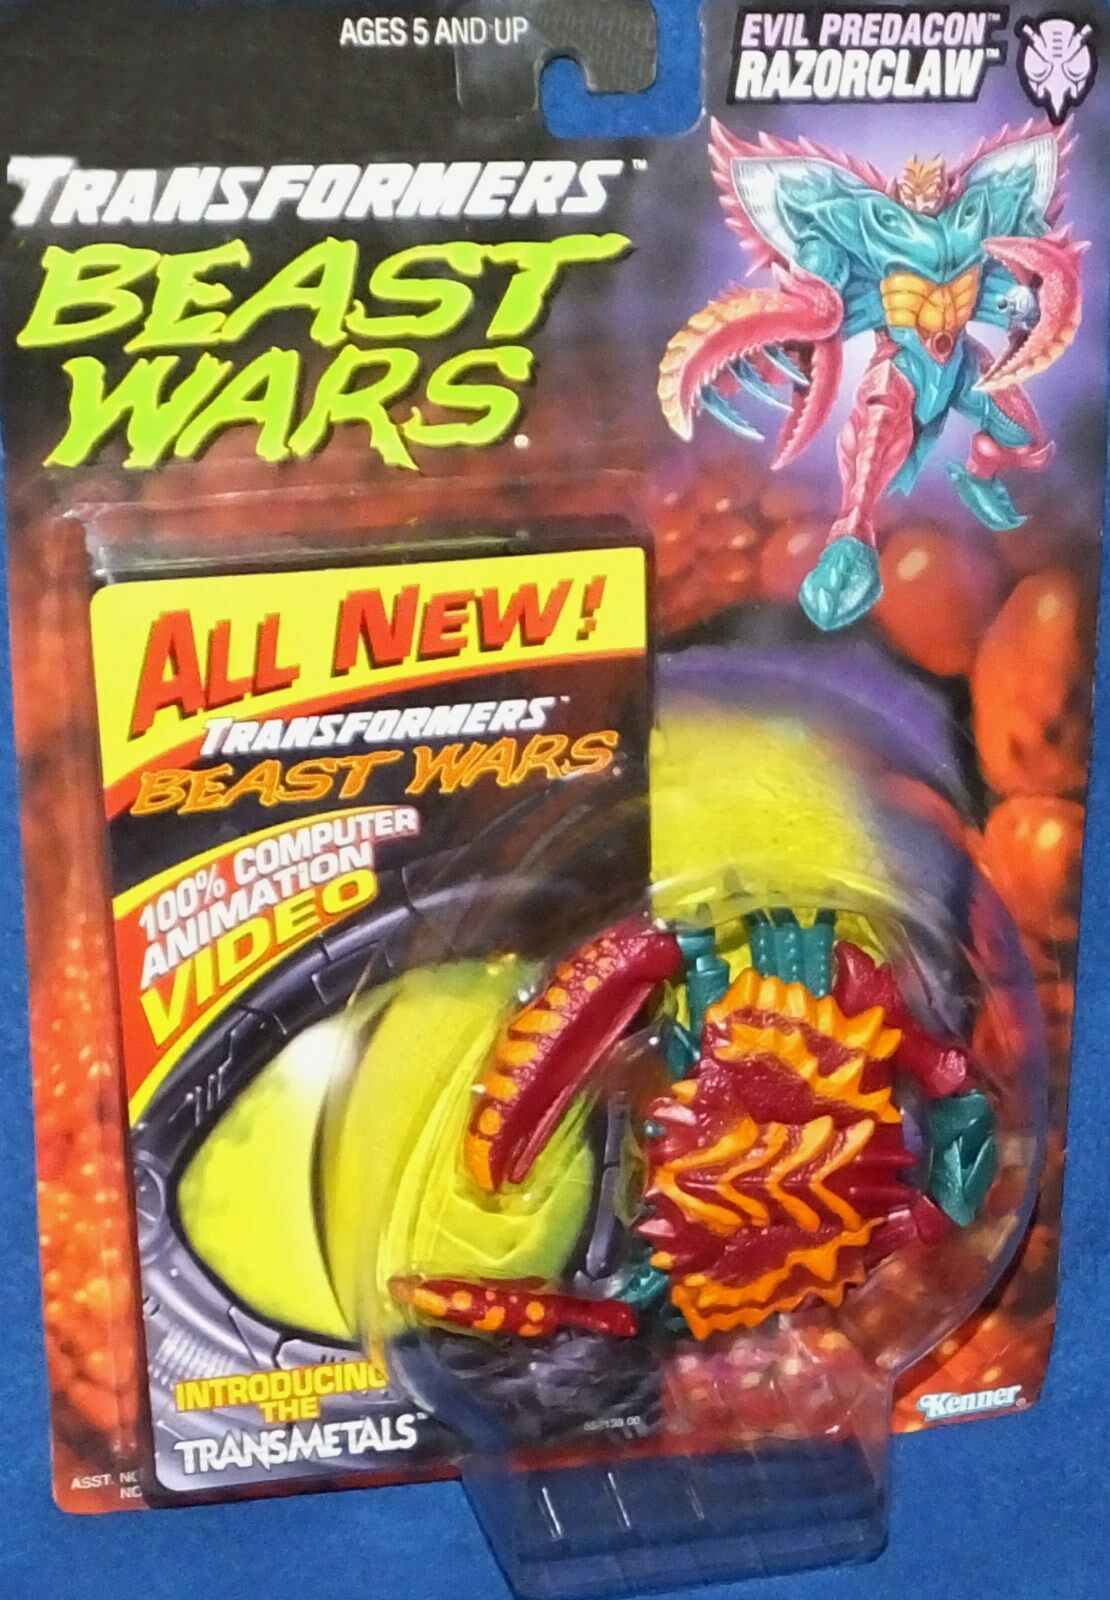 Transformers Beast guerras Evil Prossoacon Razorclaw nuovo 1997 W Video Factory Sealed